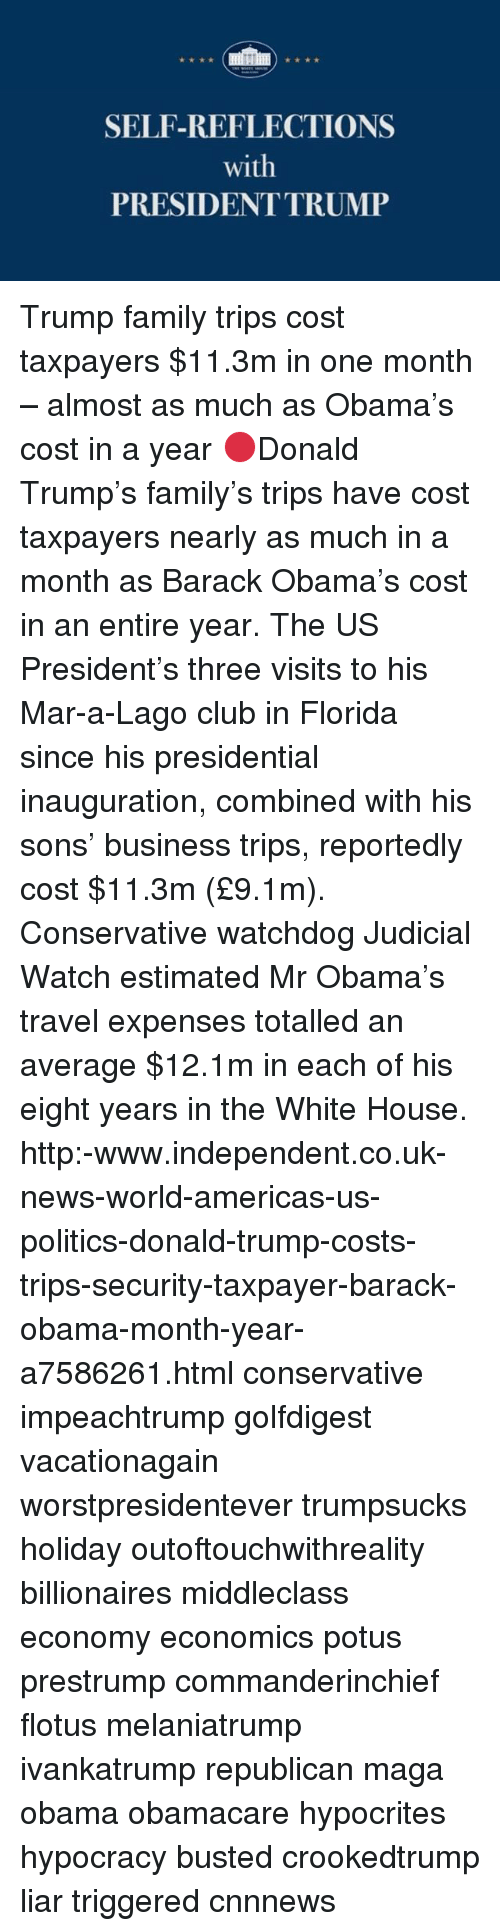 presidential inauguration: SELF-REFLECTIONS  with  PRESIDENT TRUMP Trump family trips cost taxpayers $11.3m in one month – almost as much as Obama's cost in a year 🔴Donald Trump's family's trips have cost taxpayers nearly as much in a month as Barack Obama's cost in an entire year. The US President's three visits to his Mar-a-Lago club in Florida since his presidential inauguration, combined with his sons' business trips, reportedly cost $11.3m (£9.1m). Conservative watchdog Judicial Watch estimated Mr Obama's travel expenses totalled an average $12.1m in each of his eight years in the White House. ☡http:-www.independent.co.uk-news-world-americas-us-politics-donald-trump-costs-trips-security-taxpayer-barack-obama-month-year-a7586261.html conservative impeachtrump golfdigest vacationagain worstpresidentever trumpsucks holiday outoftouchwithreality billionaires middleclass economy economics potus prestrump commanderinchief flotus melaniatrump ivankatrump republican maga obama obamacare hypocrites hypocracy busted crookedtrump liar triggered cnnnews